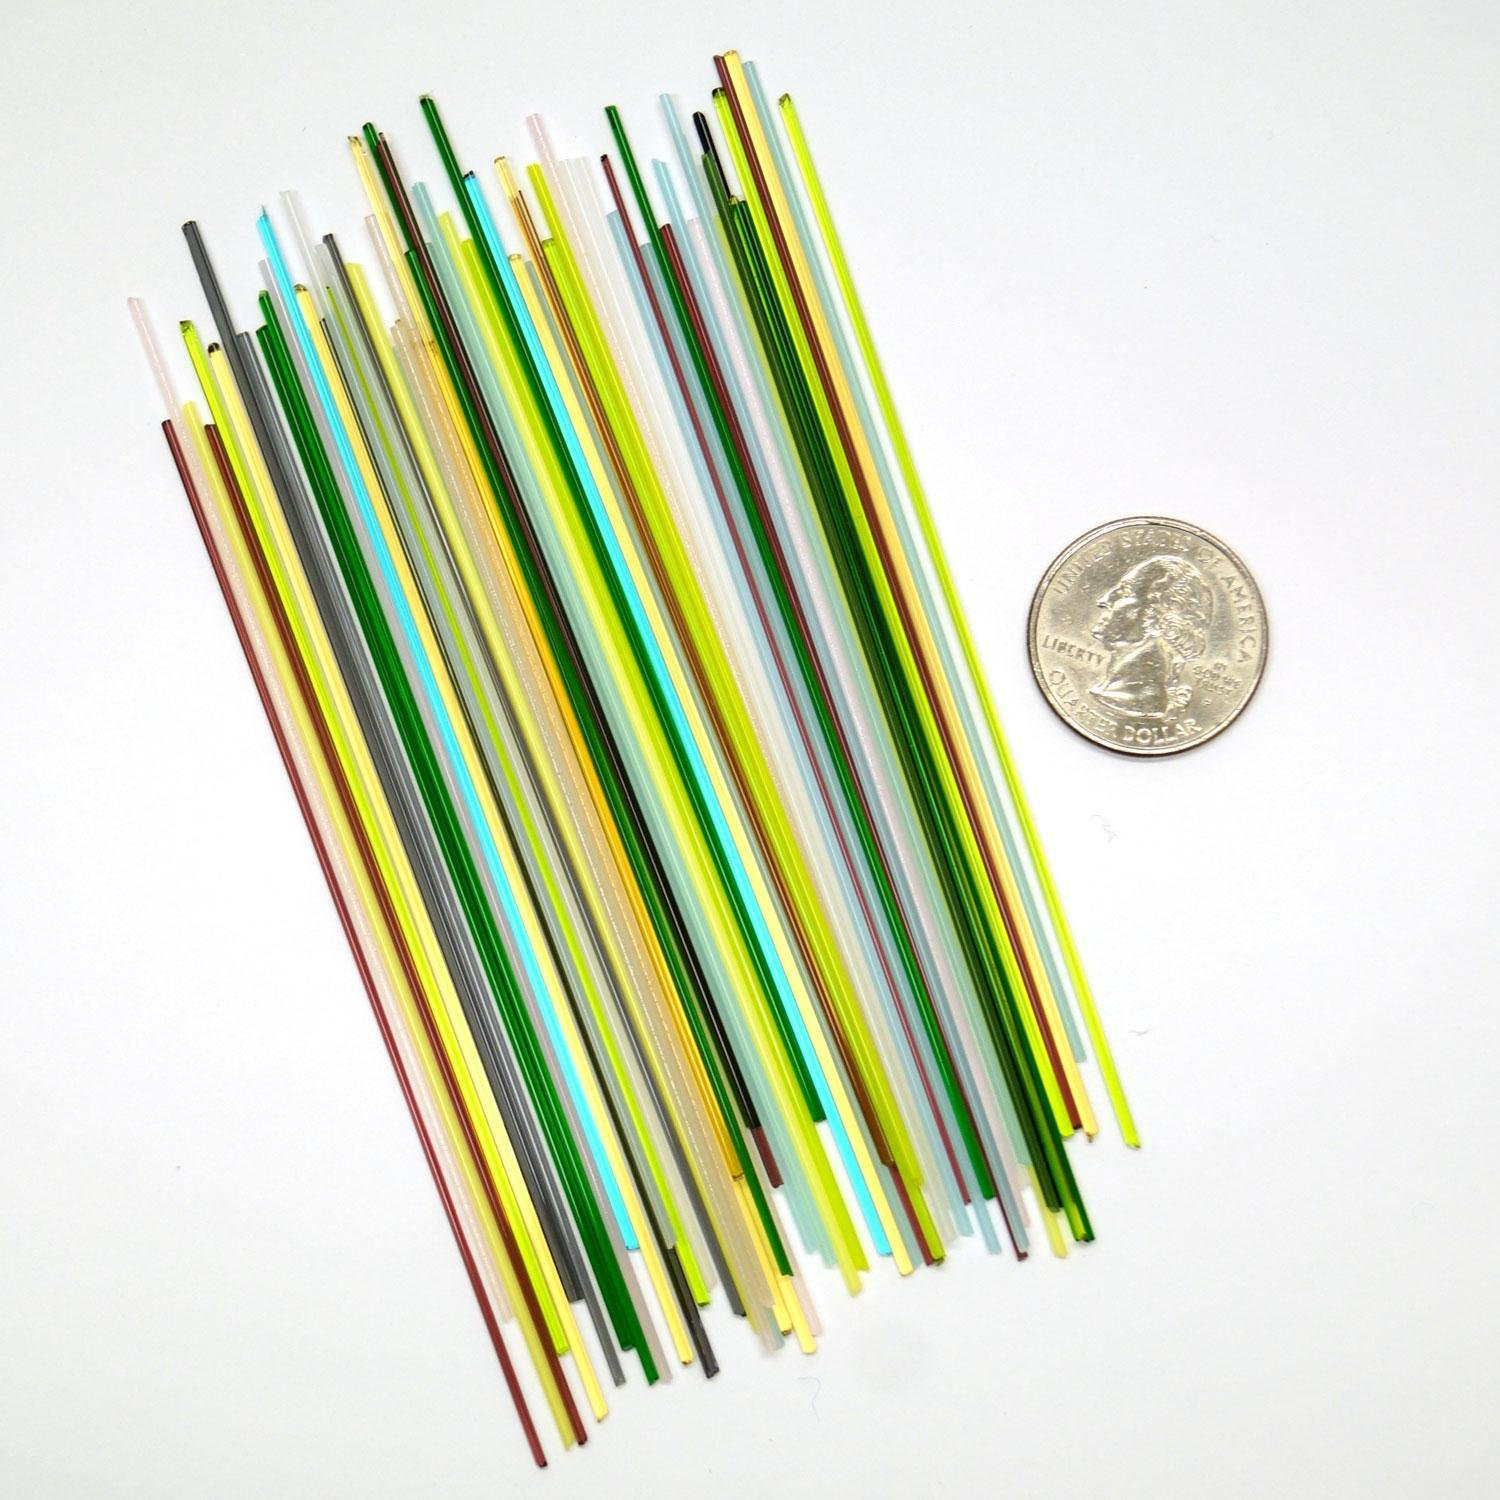 Fuseworks Variety Colors Thin Stringers Assortment 90 COE